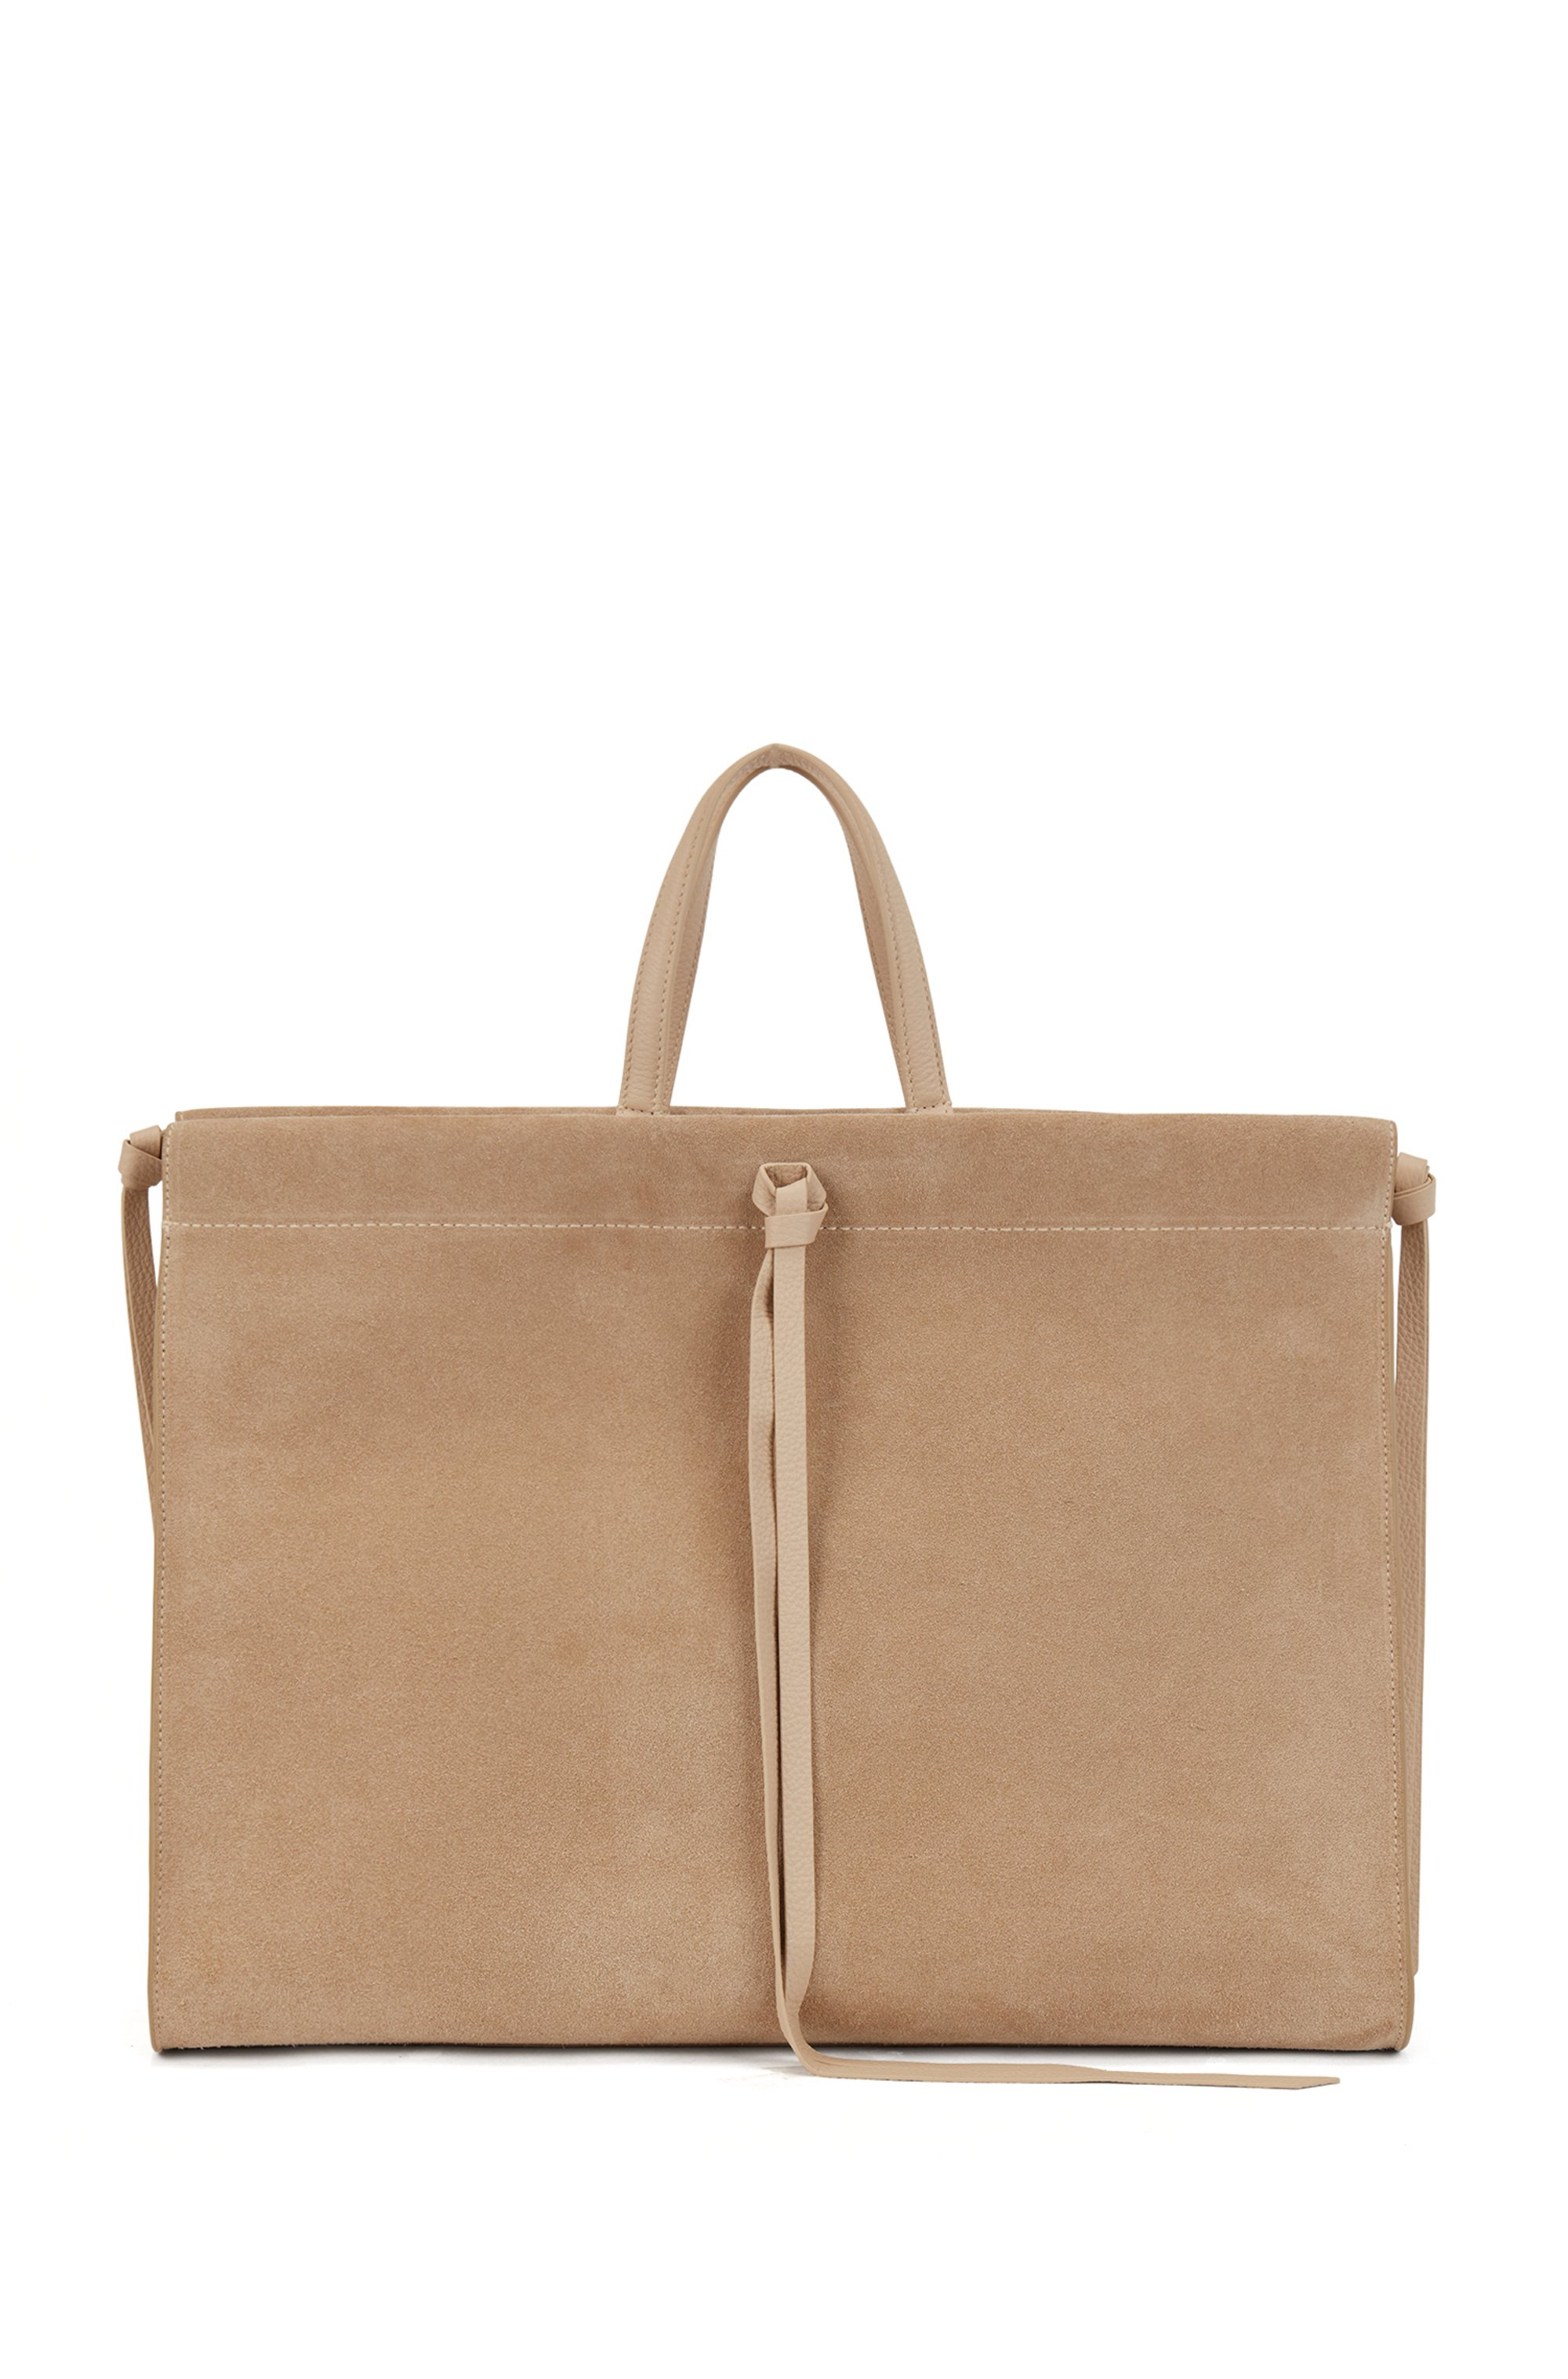 Suede tote bag with knotted tassel trims, Beige